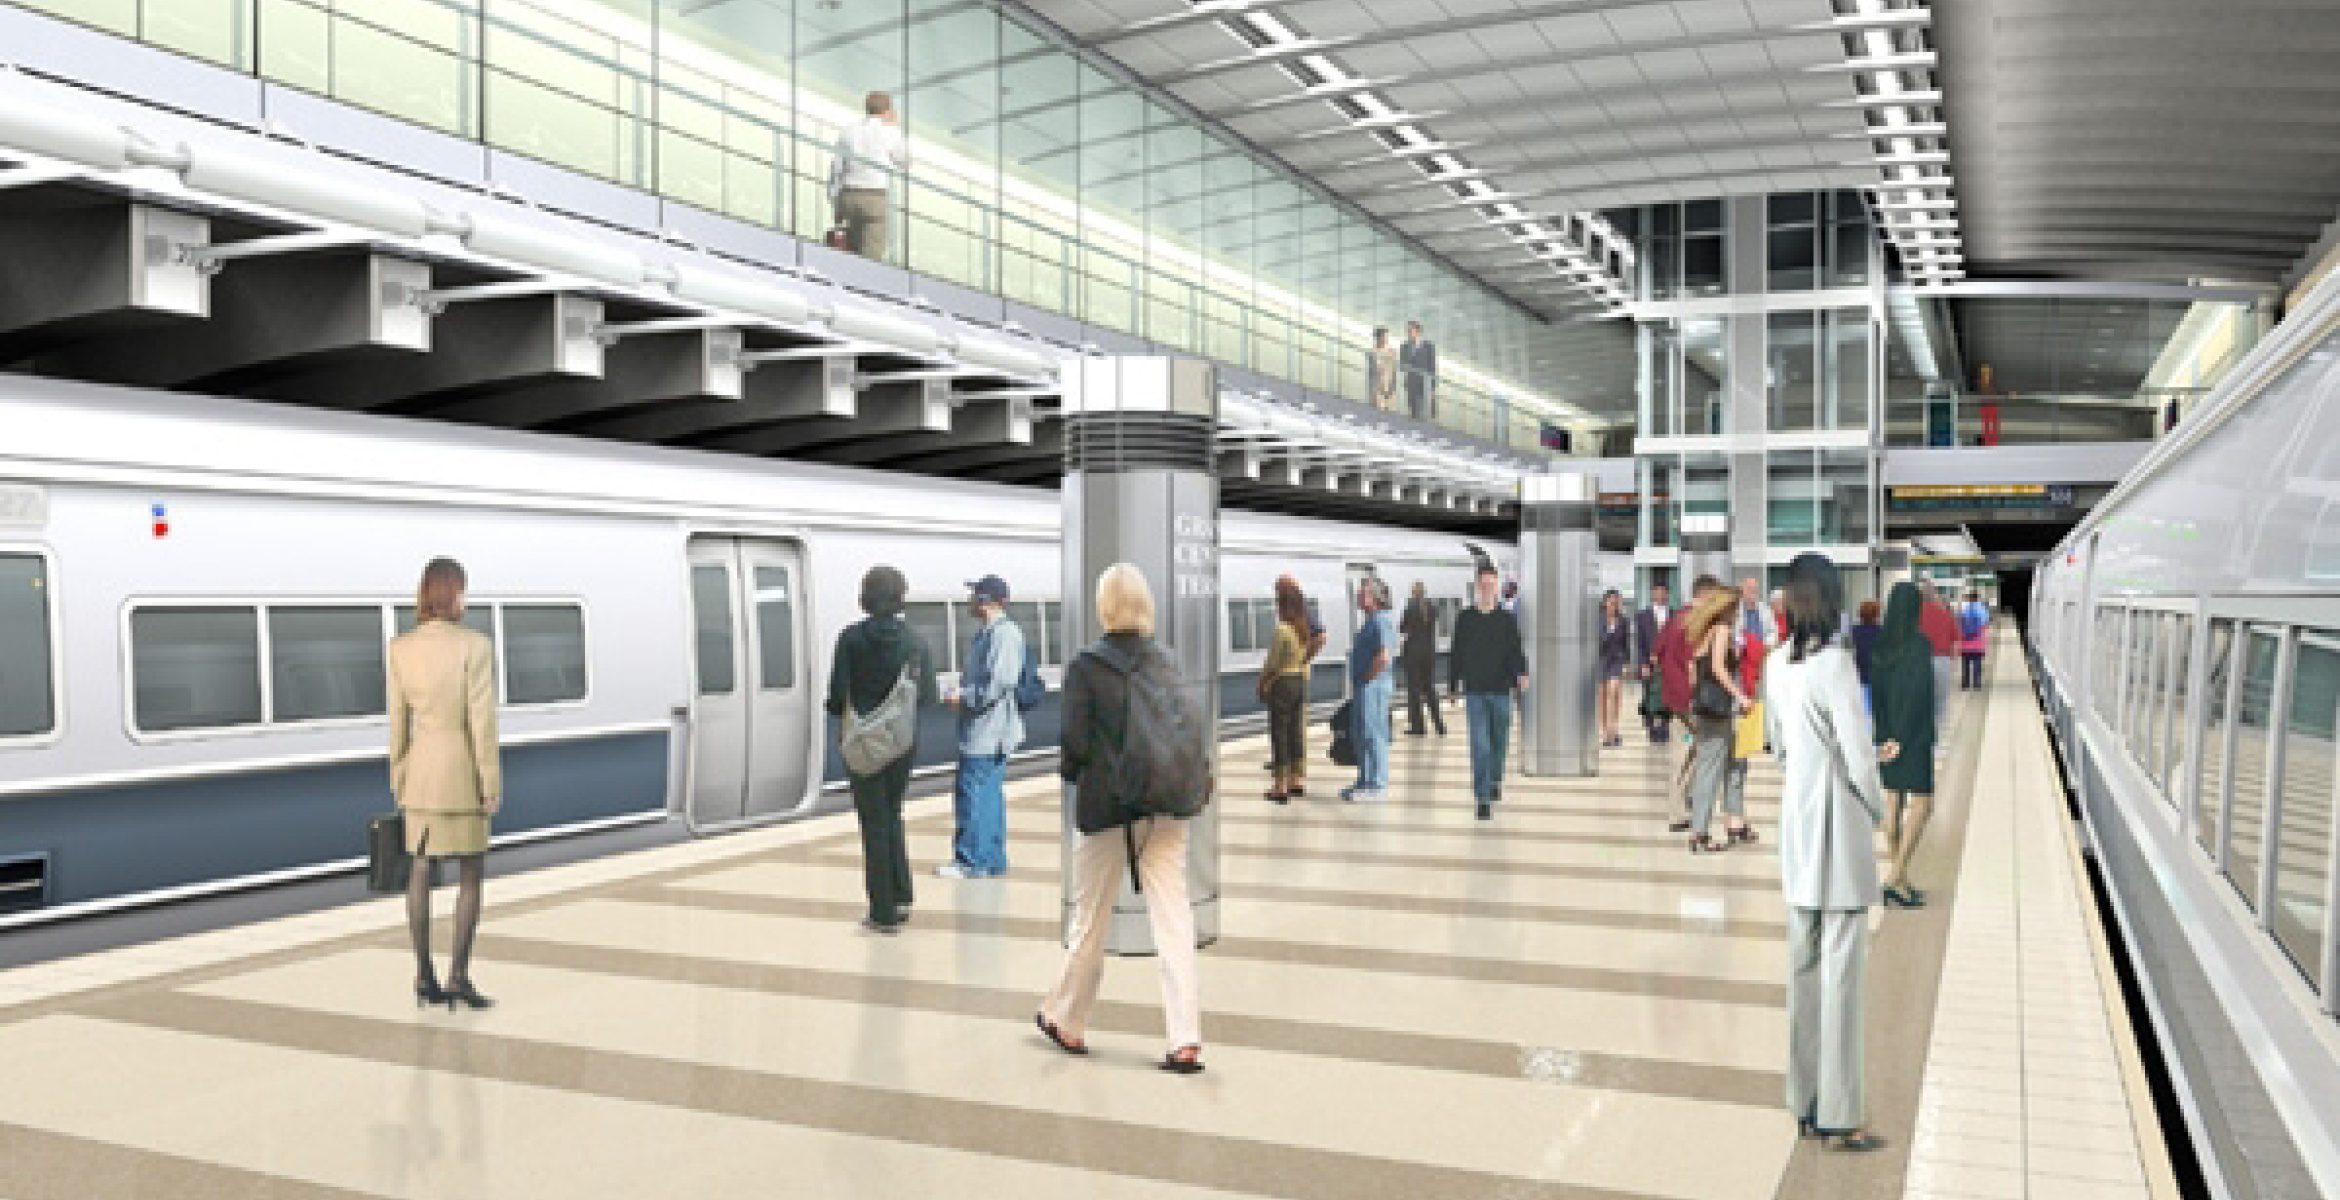 Artist's rendition of new Long Island Railroad terminal at Grand Central Station - part of the East Side Access project.